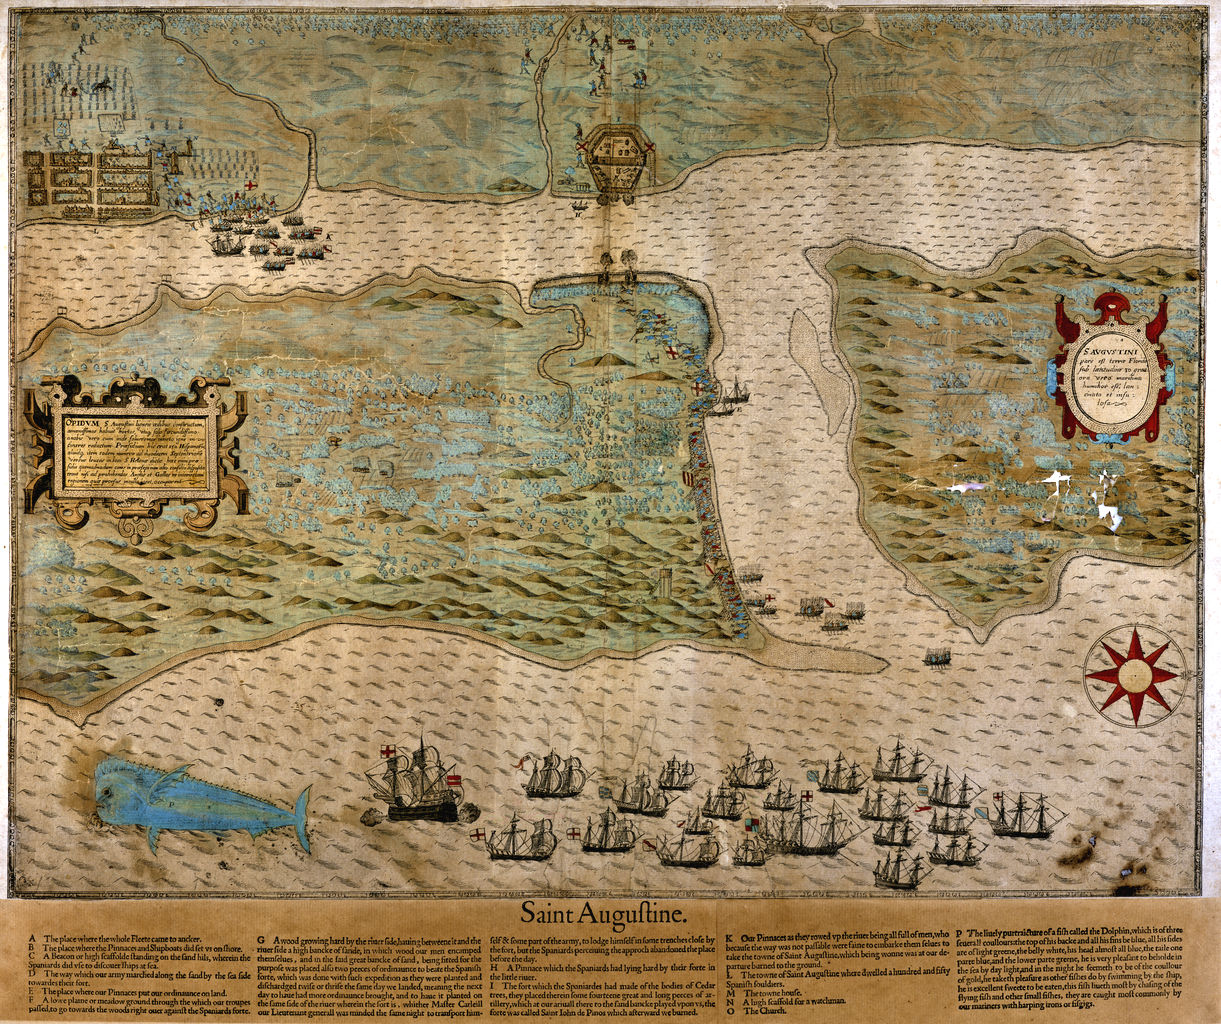 st augustine historical map 1589